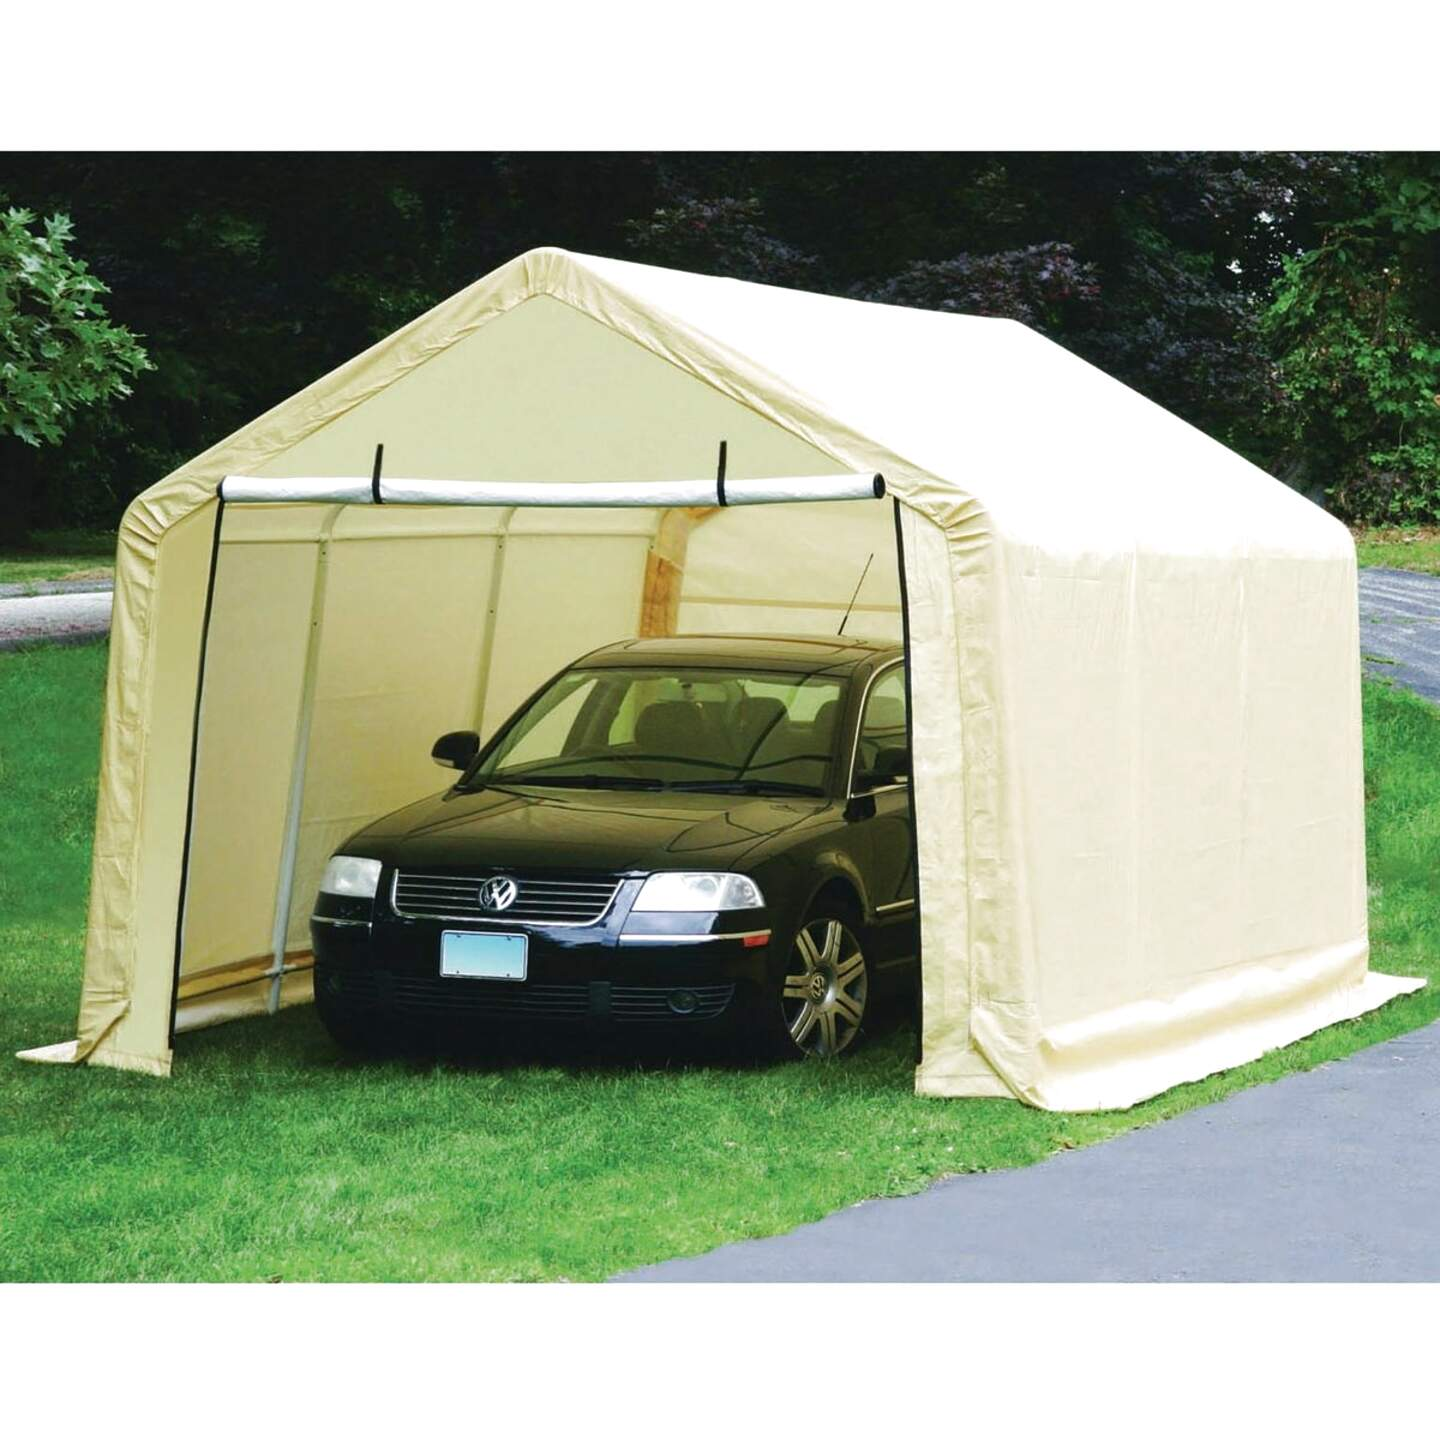 Portable Garage for sale   Only 3 left at -60%